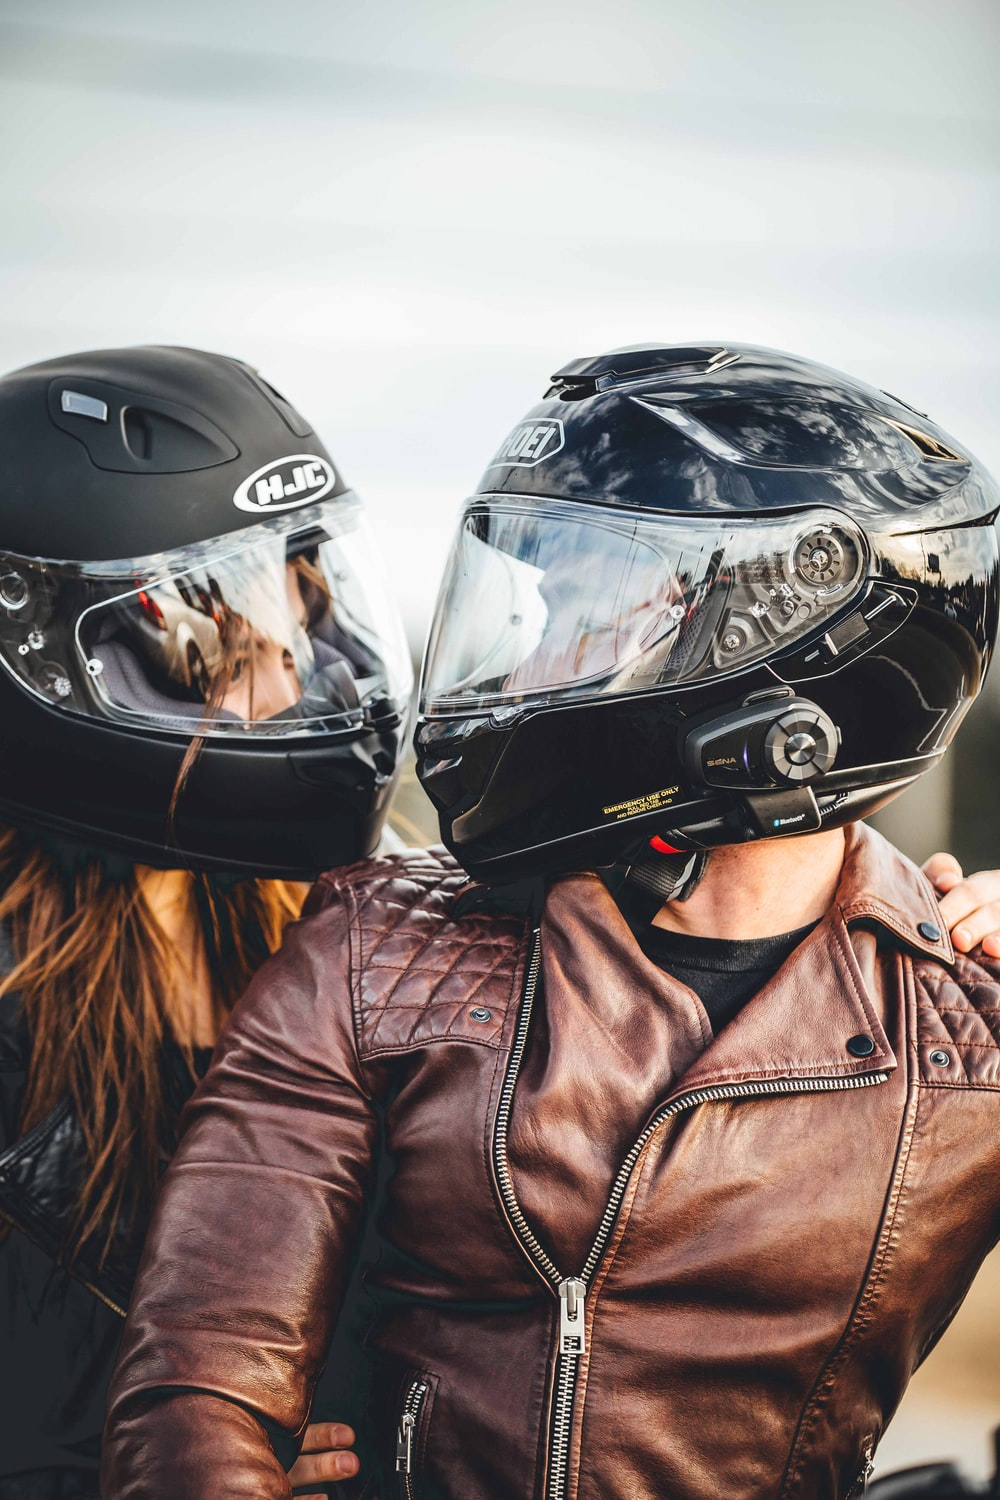 500 Helmet Pictures Hd Download Free Images On Unsplash